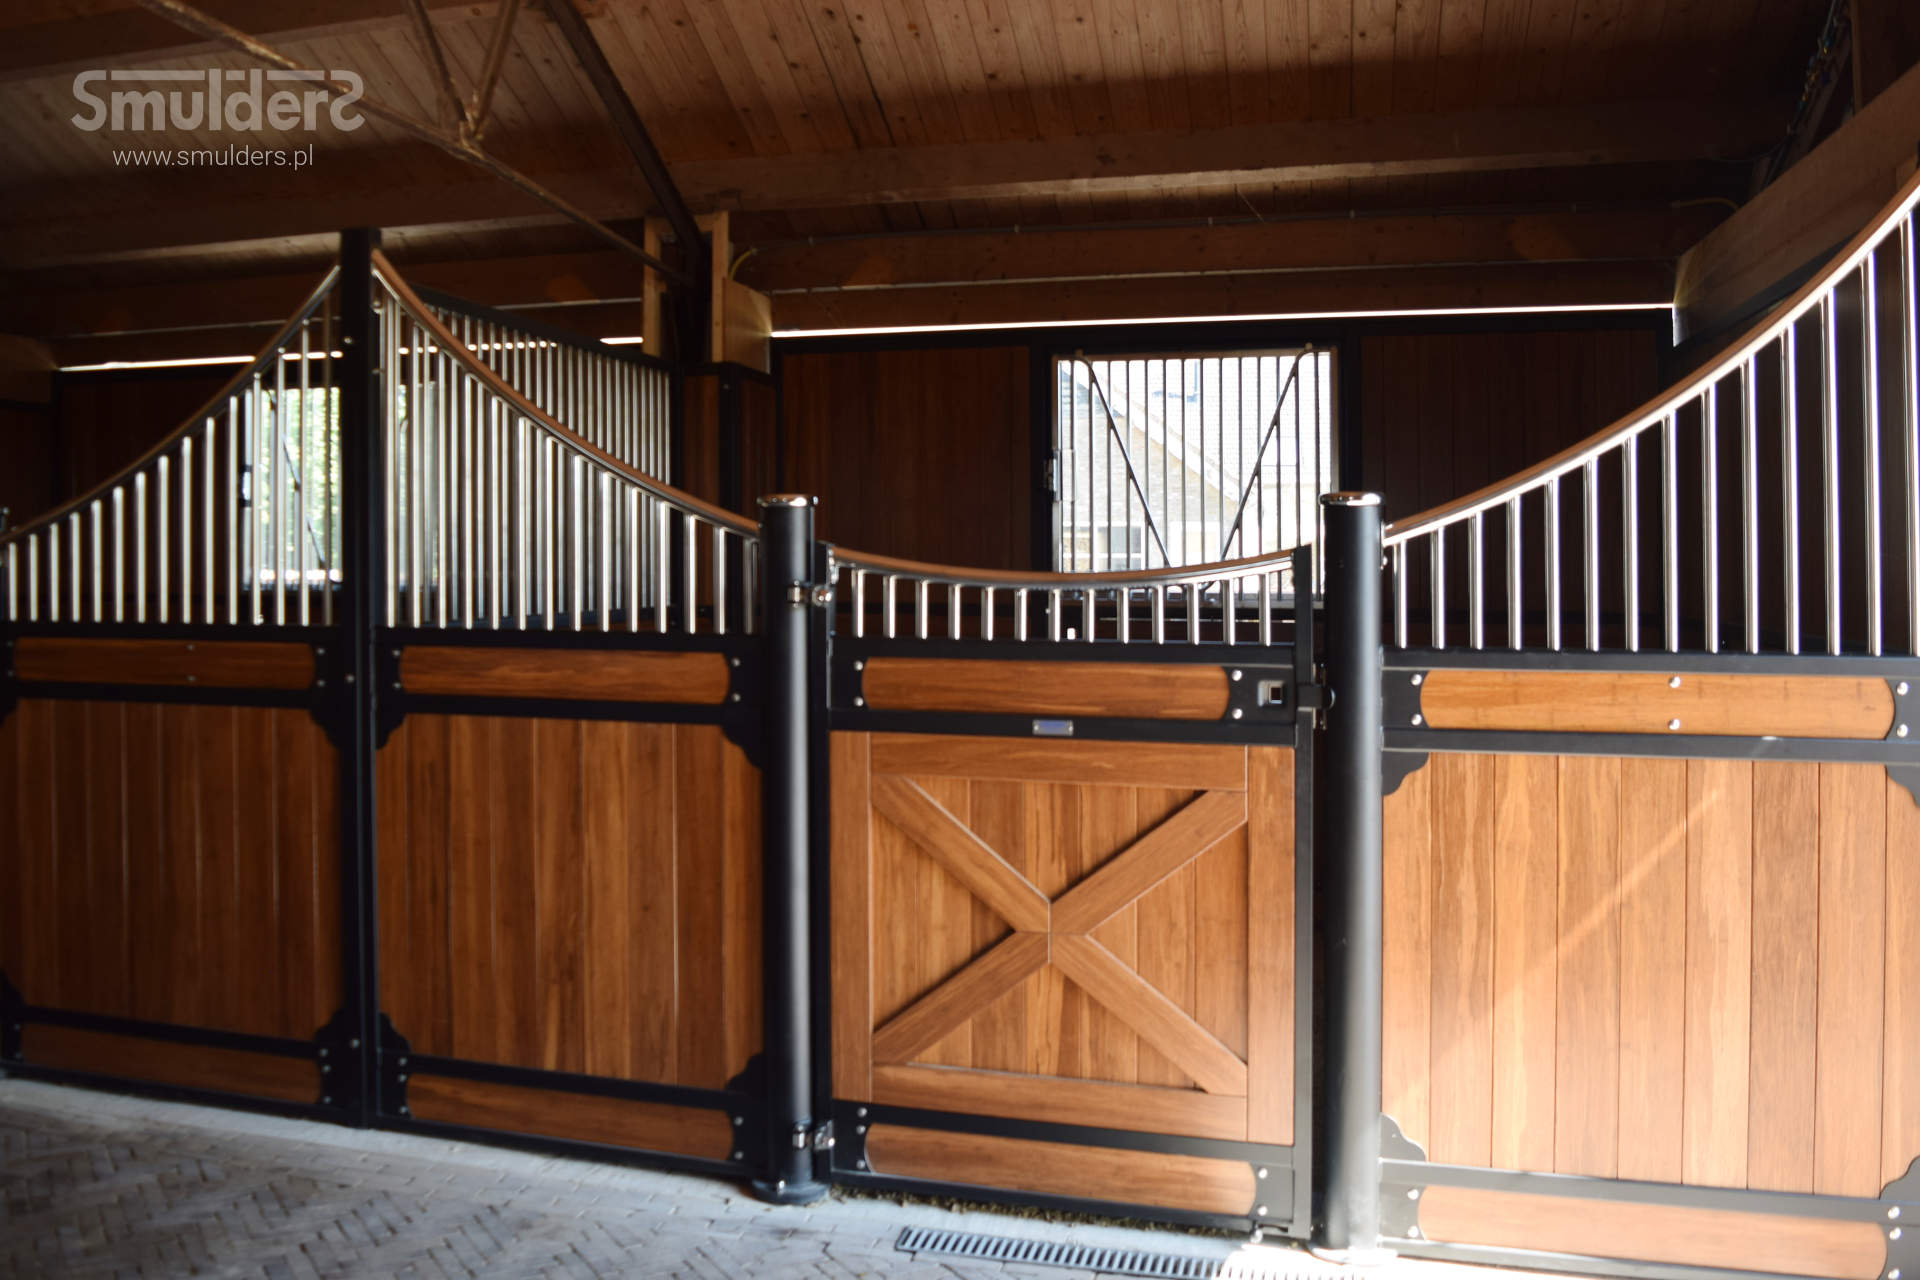 http://www.smulders.pl/wp-content/uploads/2019/02/f010_internal-stables_classic-wave_SMULDERS_PL.jpg